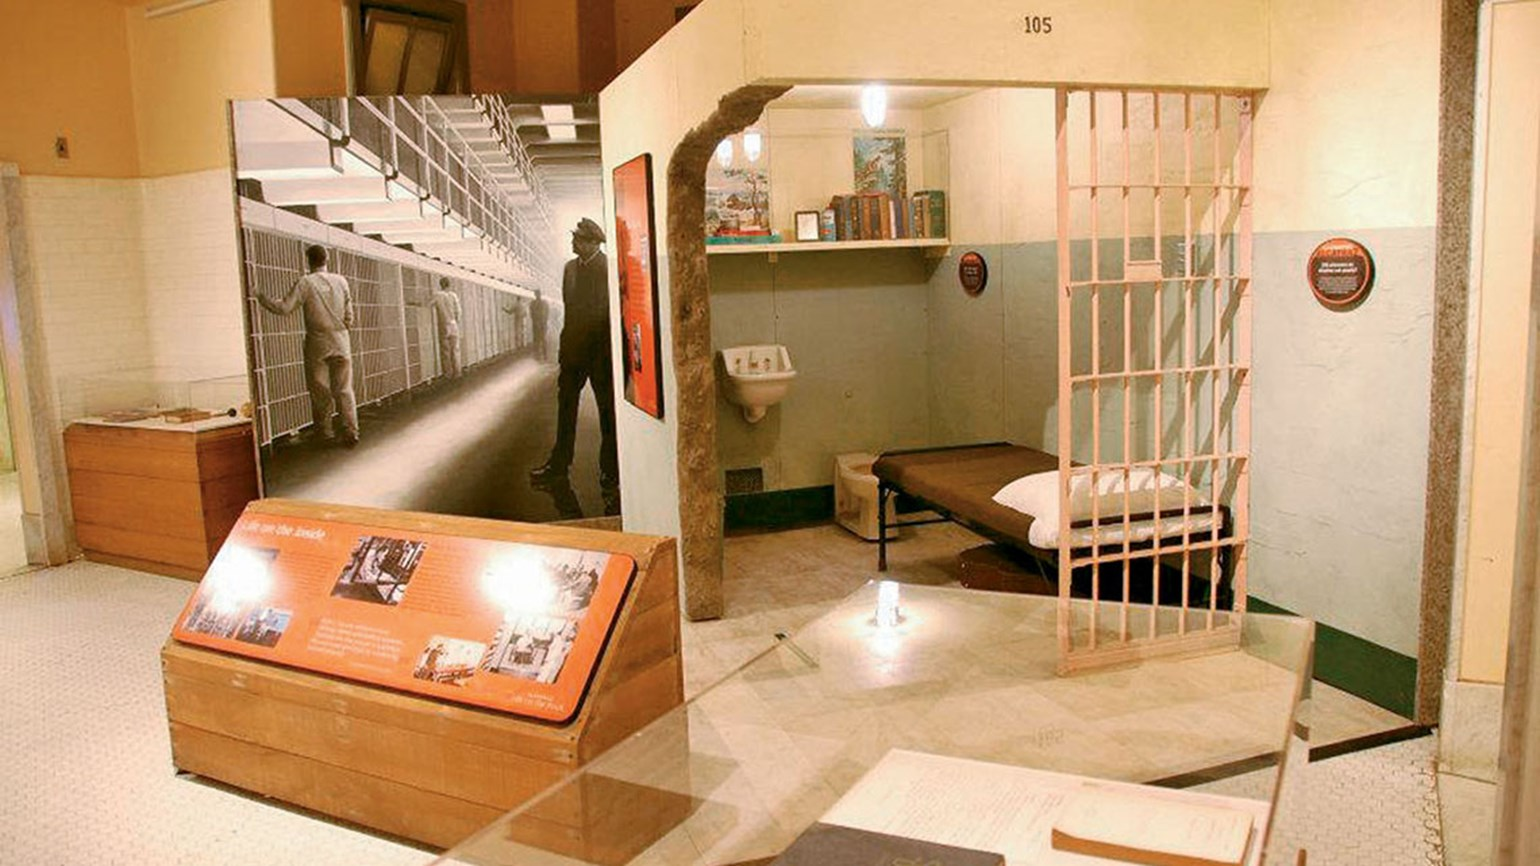 Two San Francisco hotels celebrate Alcatraz prison closure with package